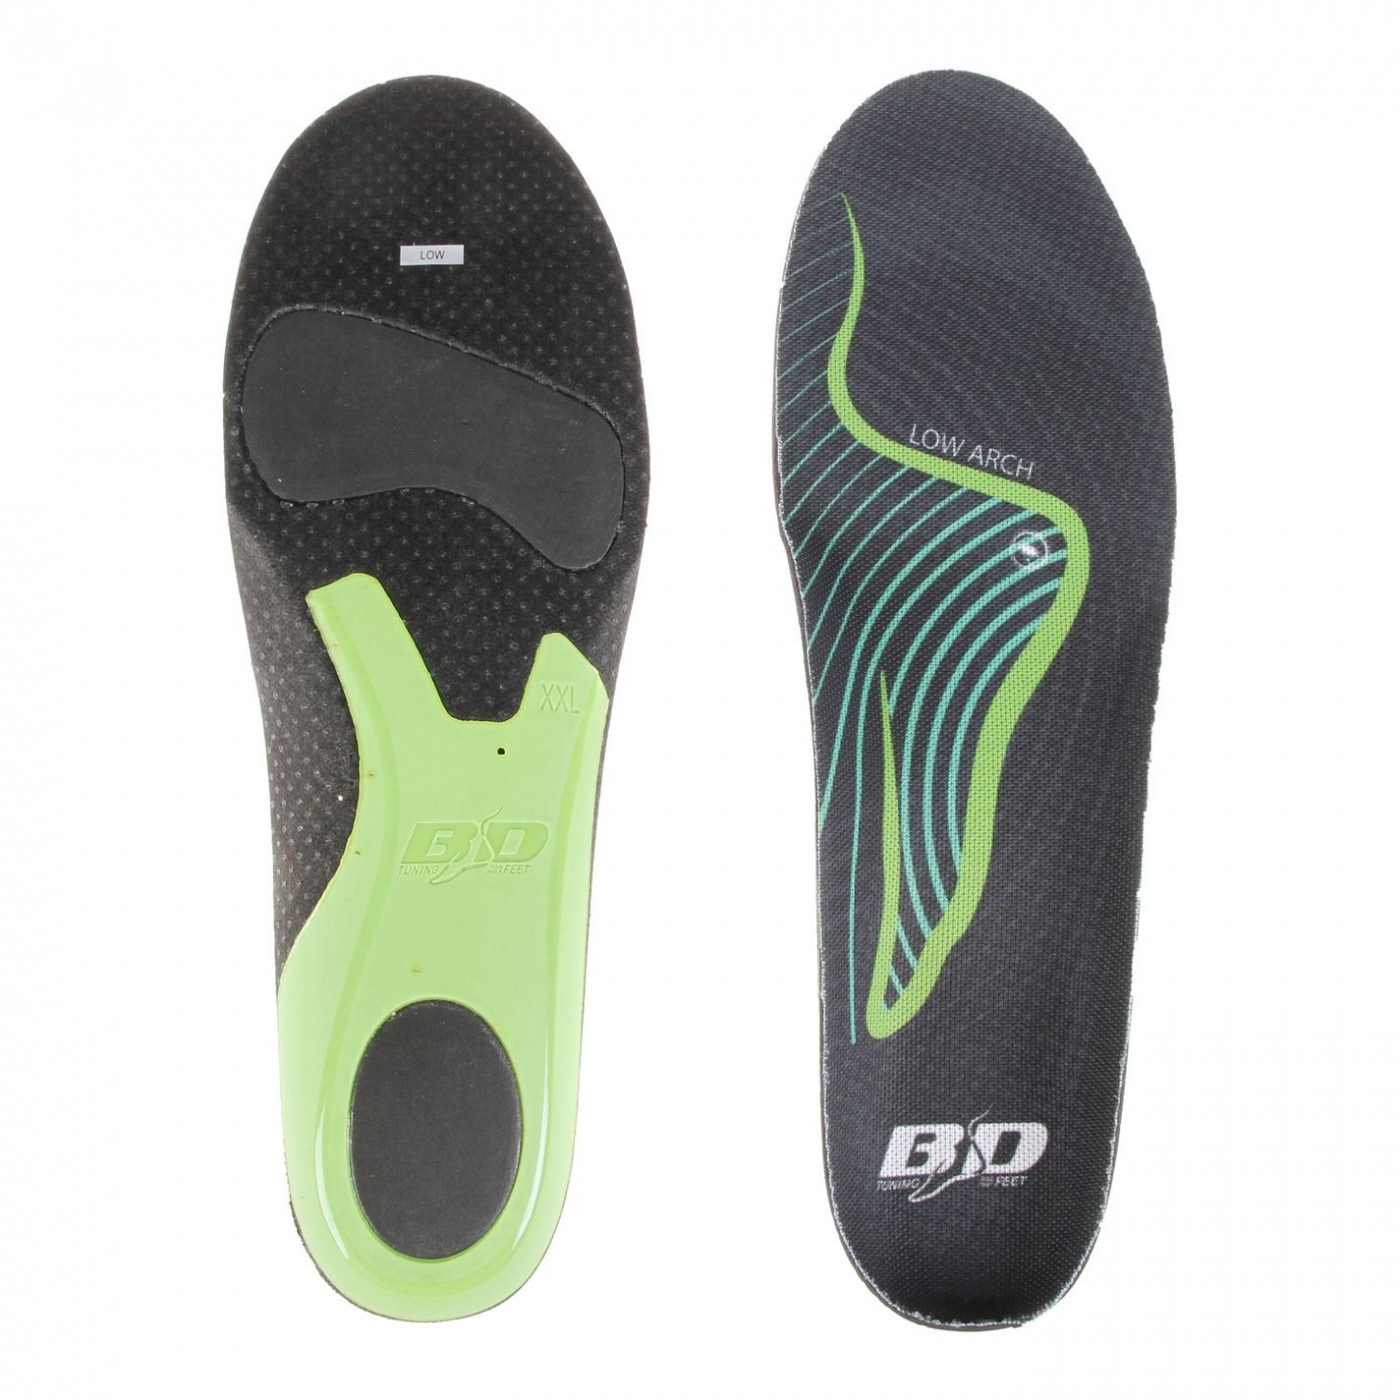 Boot doc Doc BD Insole Ski Boots Mens